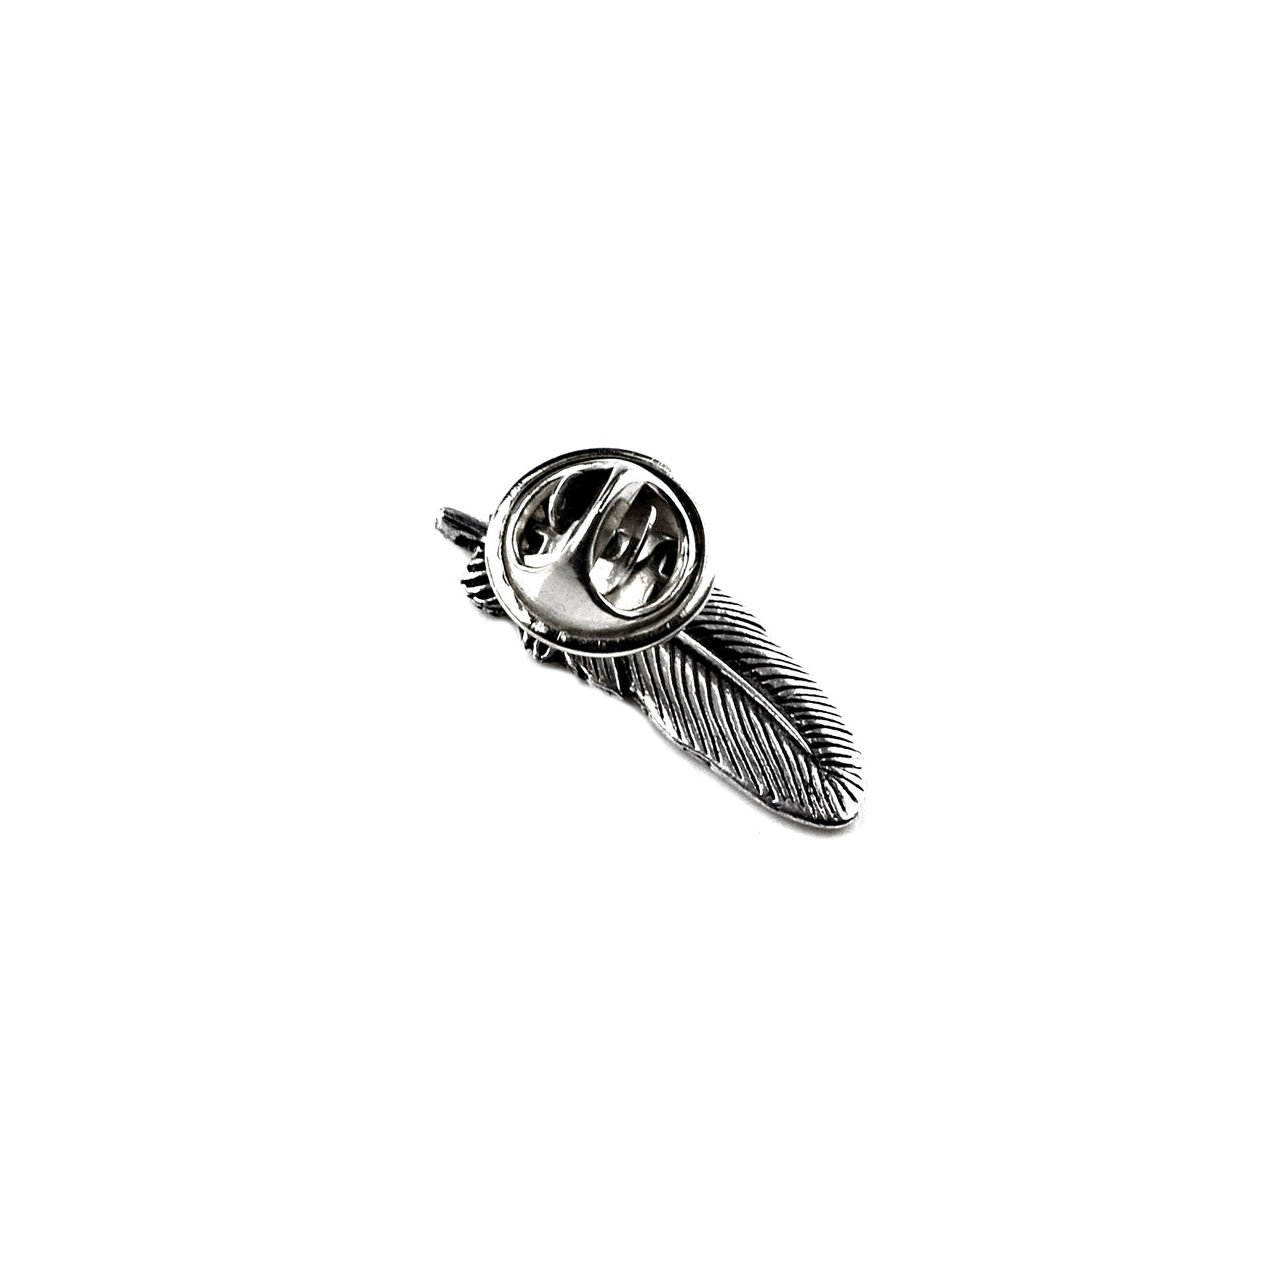 Quality Handcrafts Guaranteed Feather Lapel Pin LPSM18